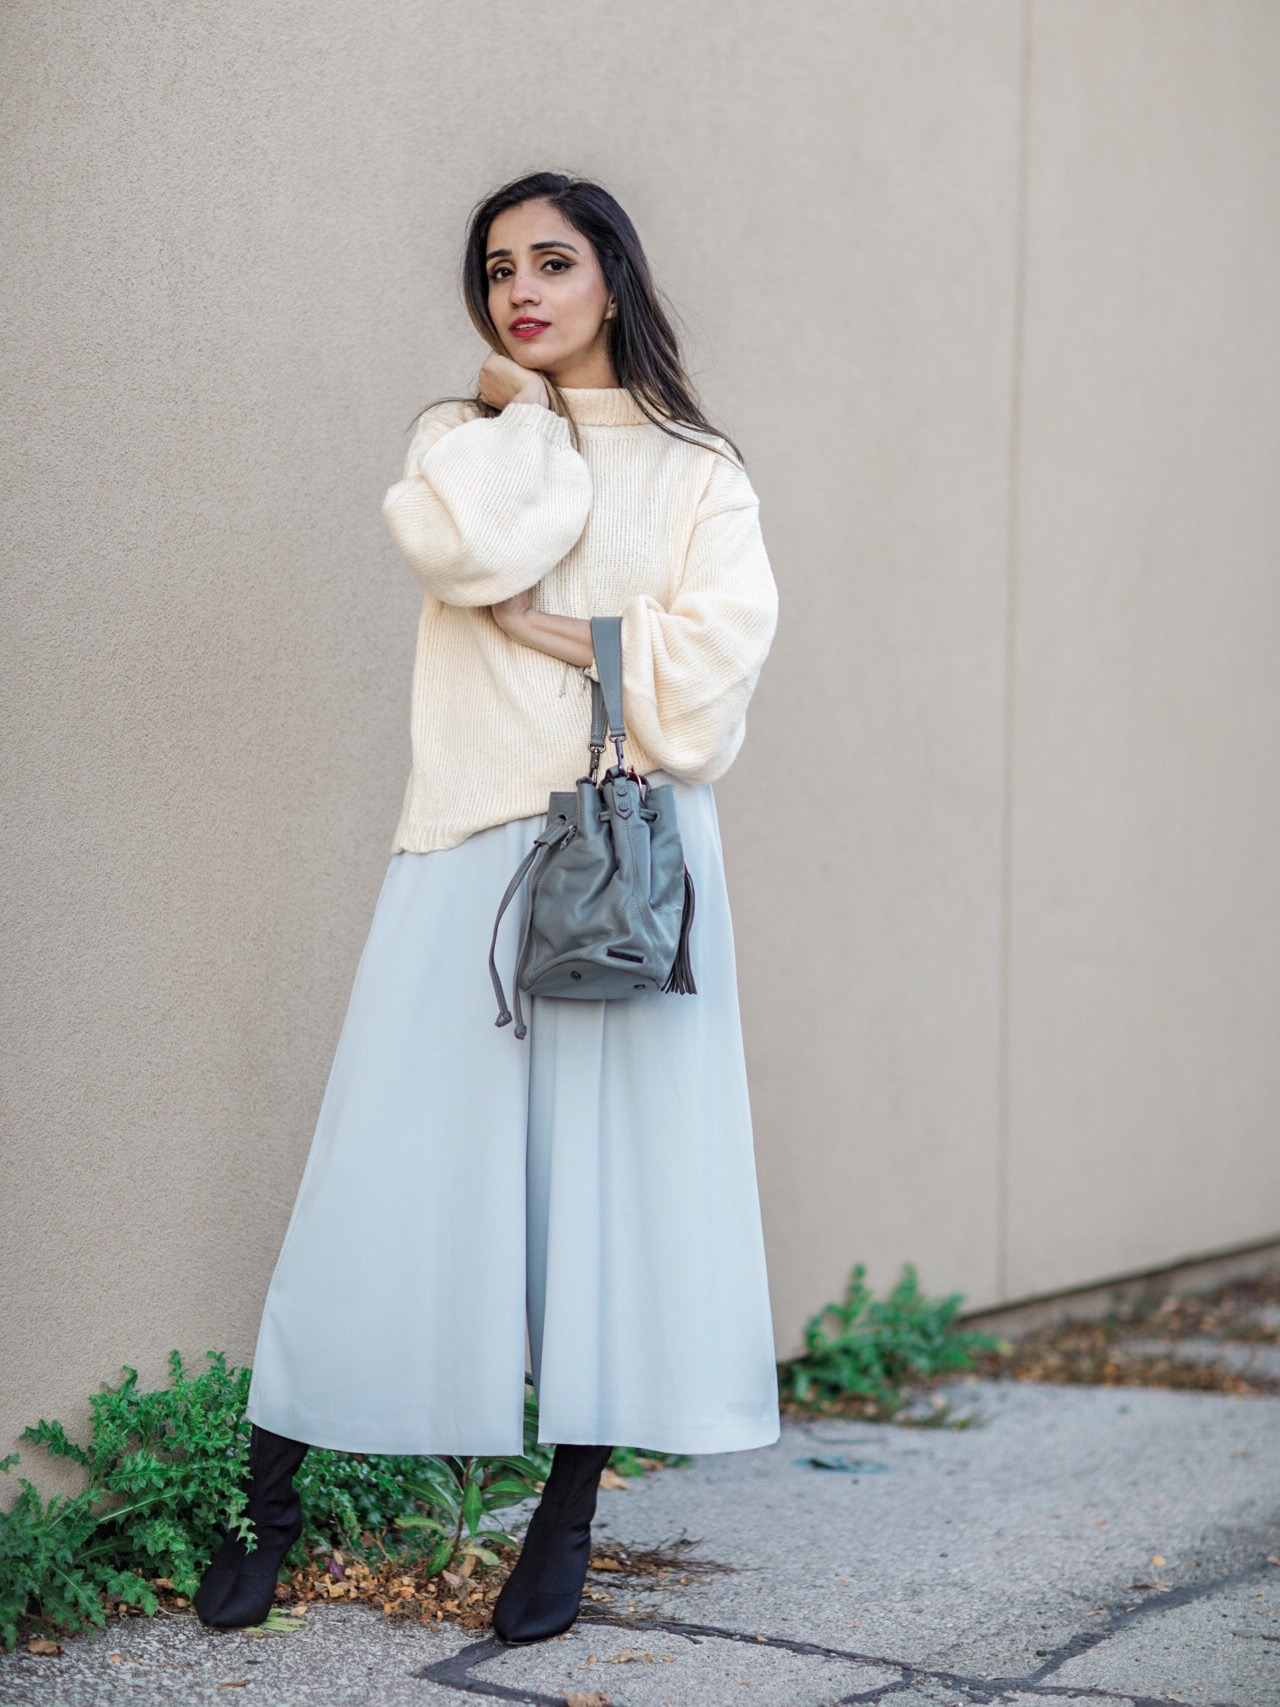 Fall Pieces To Make You Look Expensive Faiza Inam SincerelyHumble Blog Sincerely Humble Fall style fashion elegant fashion forward sock boots sweater 2